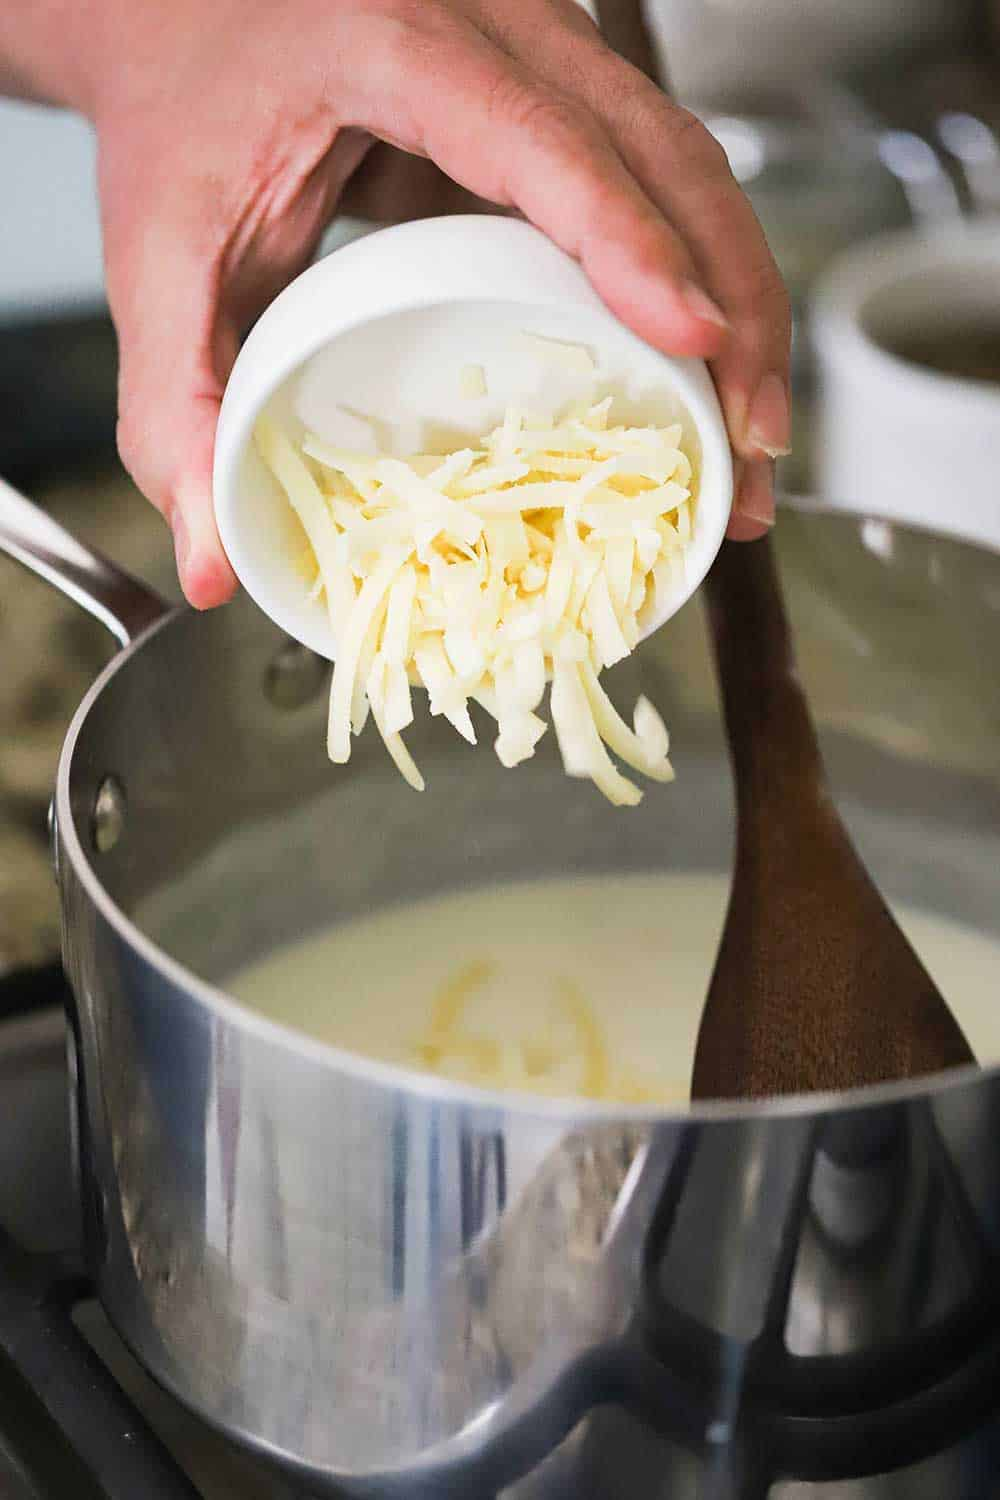 A hand transfer shredded Gruyere cheese from a small white bowl into a sauce pan filled with a béchamel sauce.